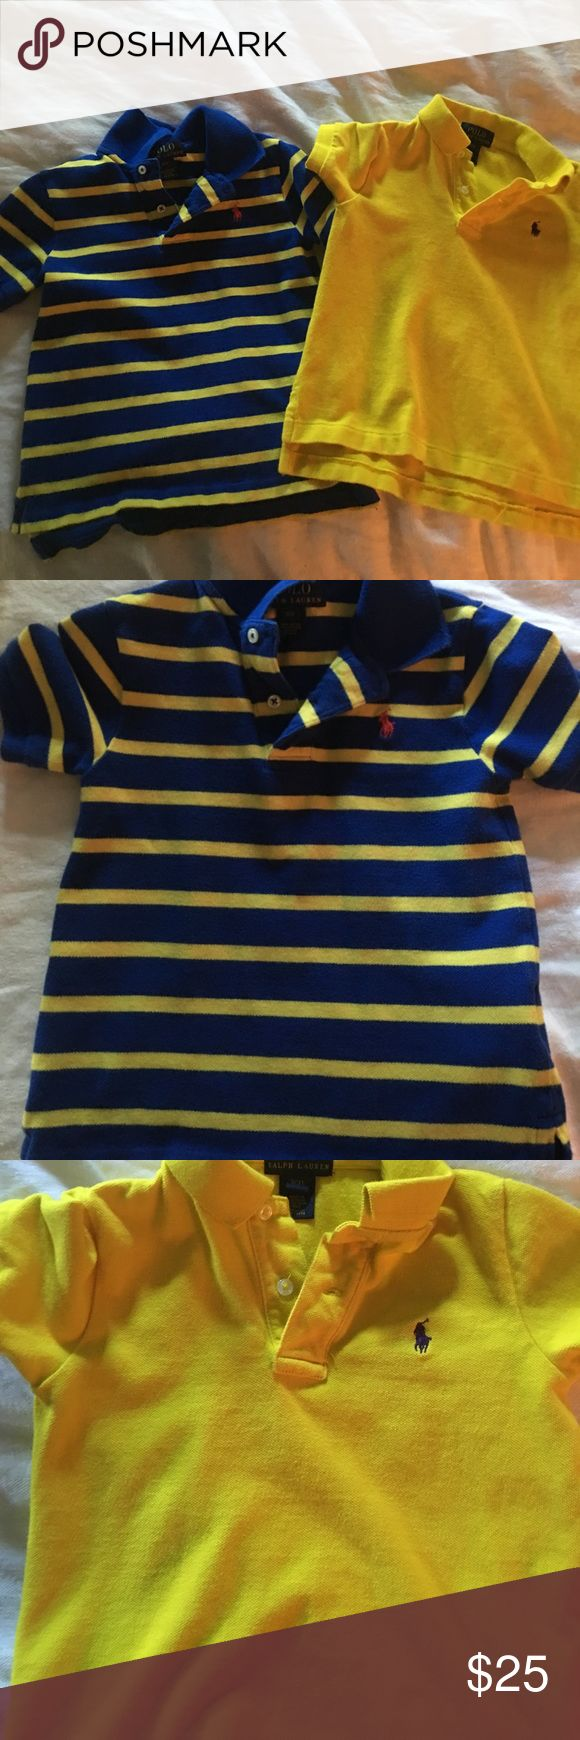 Polo shirts In great condition. 100% cotton. Blue and yellow stripes with red polo symbol. Yellow with purple polo symbol. Collared shirts. Polo by Ralph Lauren Shirts & Tops Polos